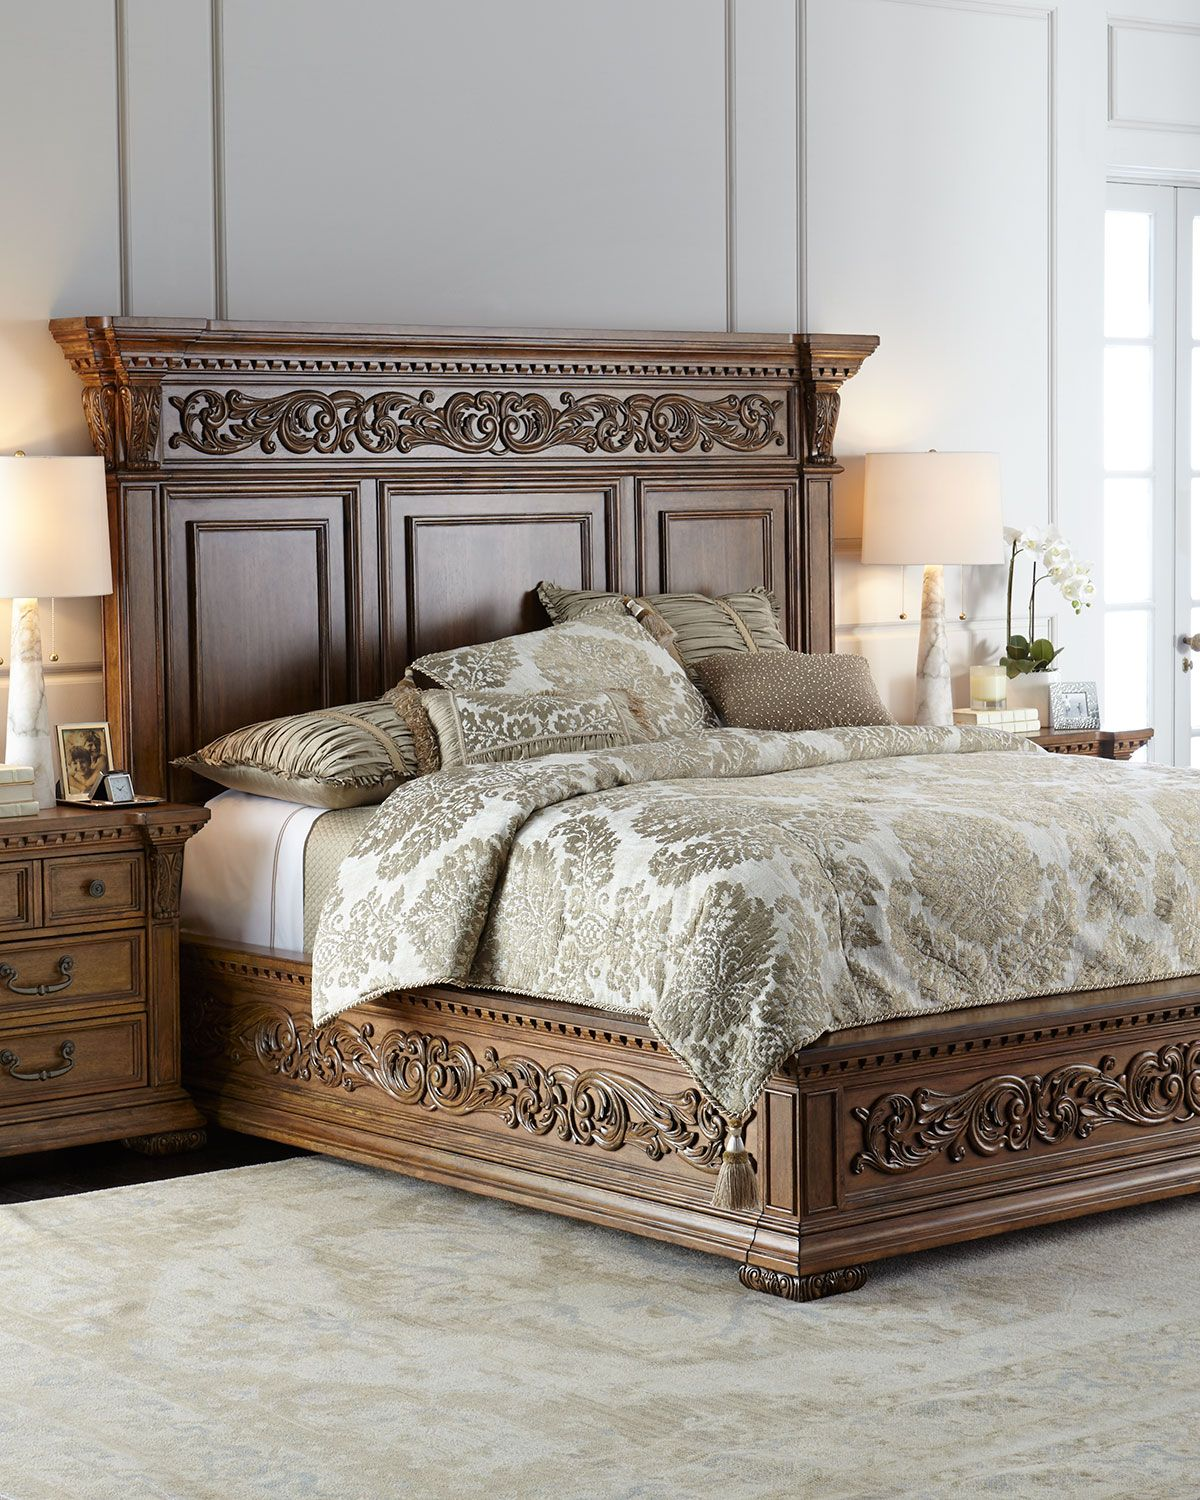 Wembley Bedroom Furniture In 2019 Traditional Bedroom